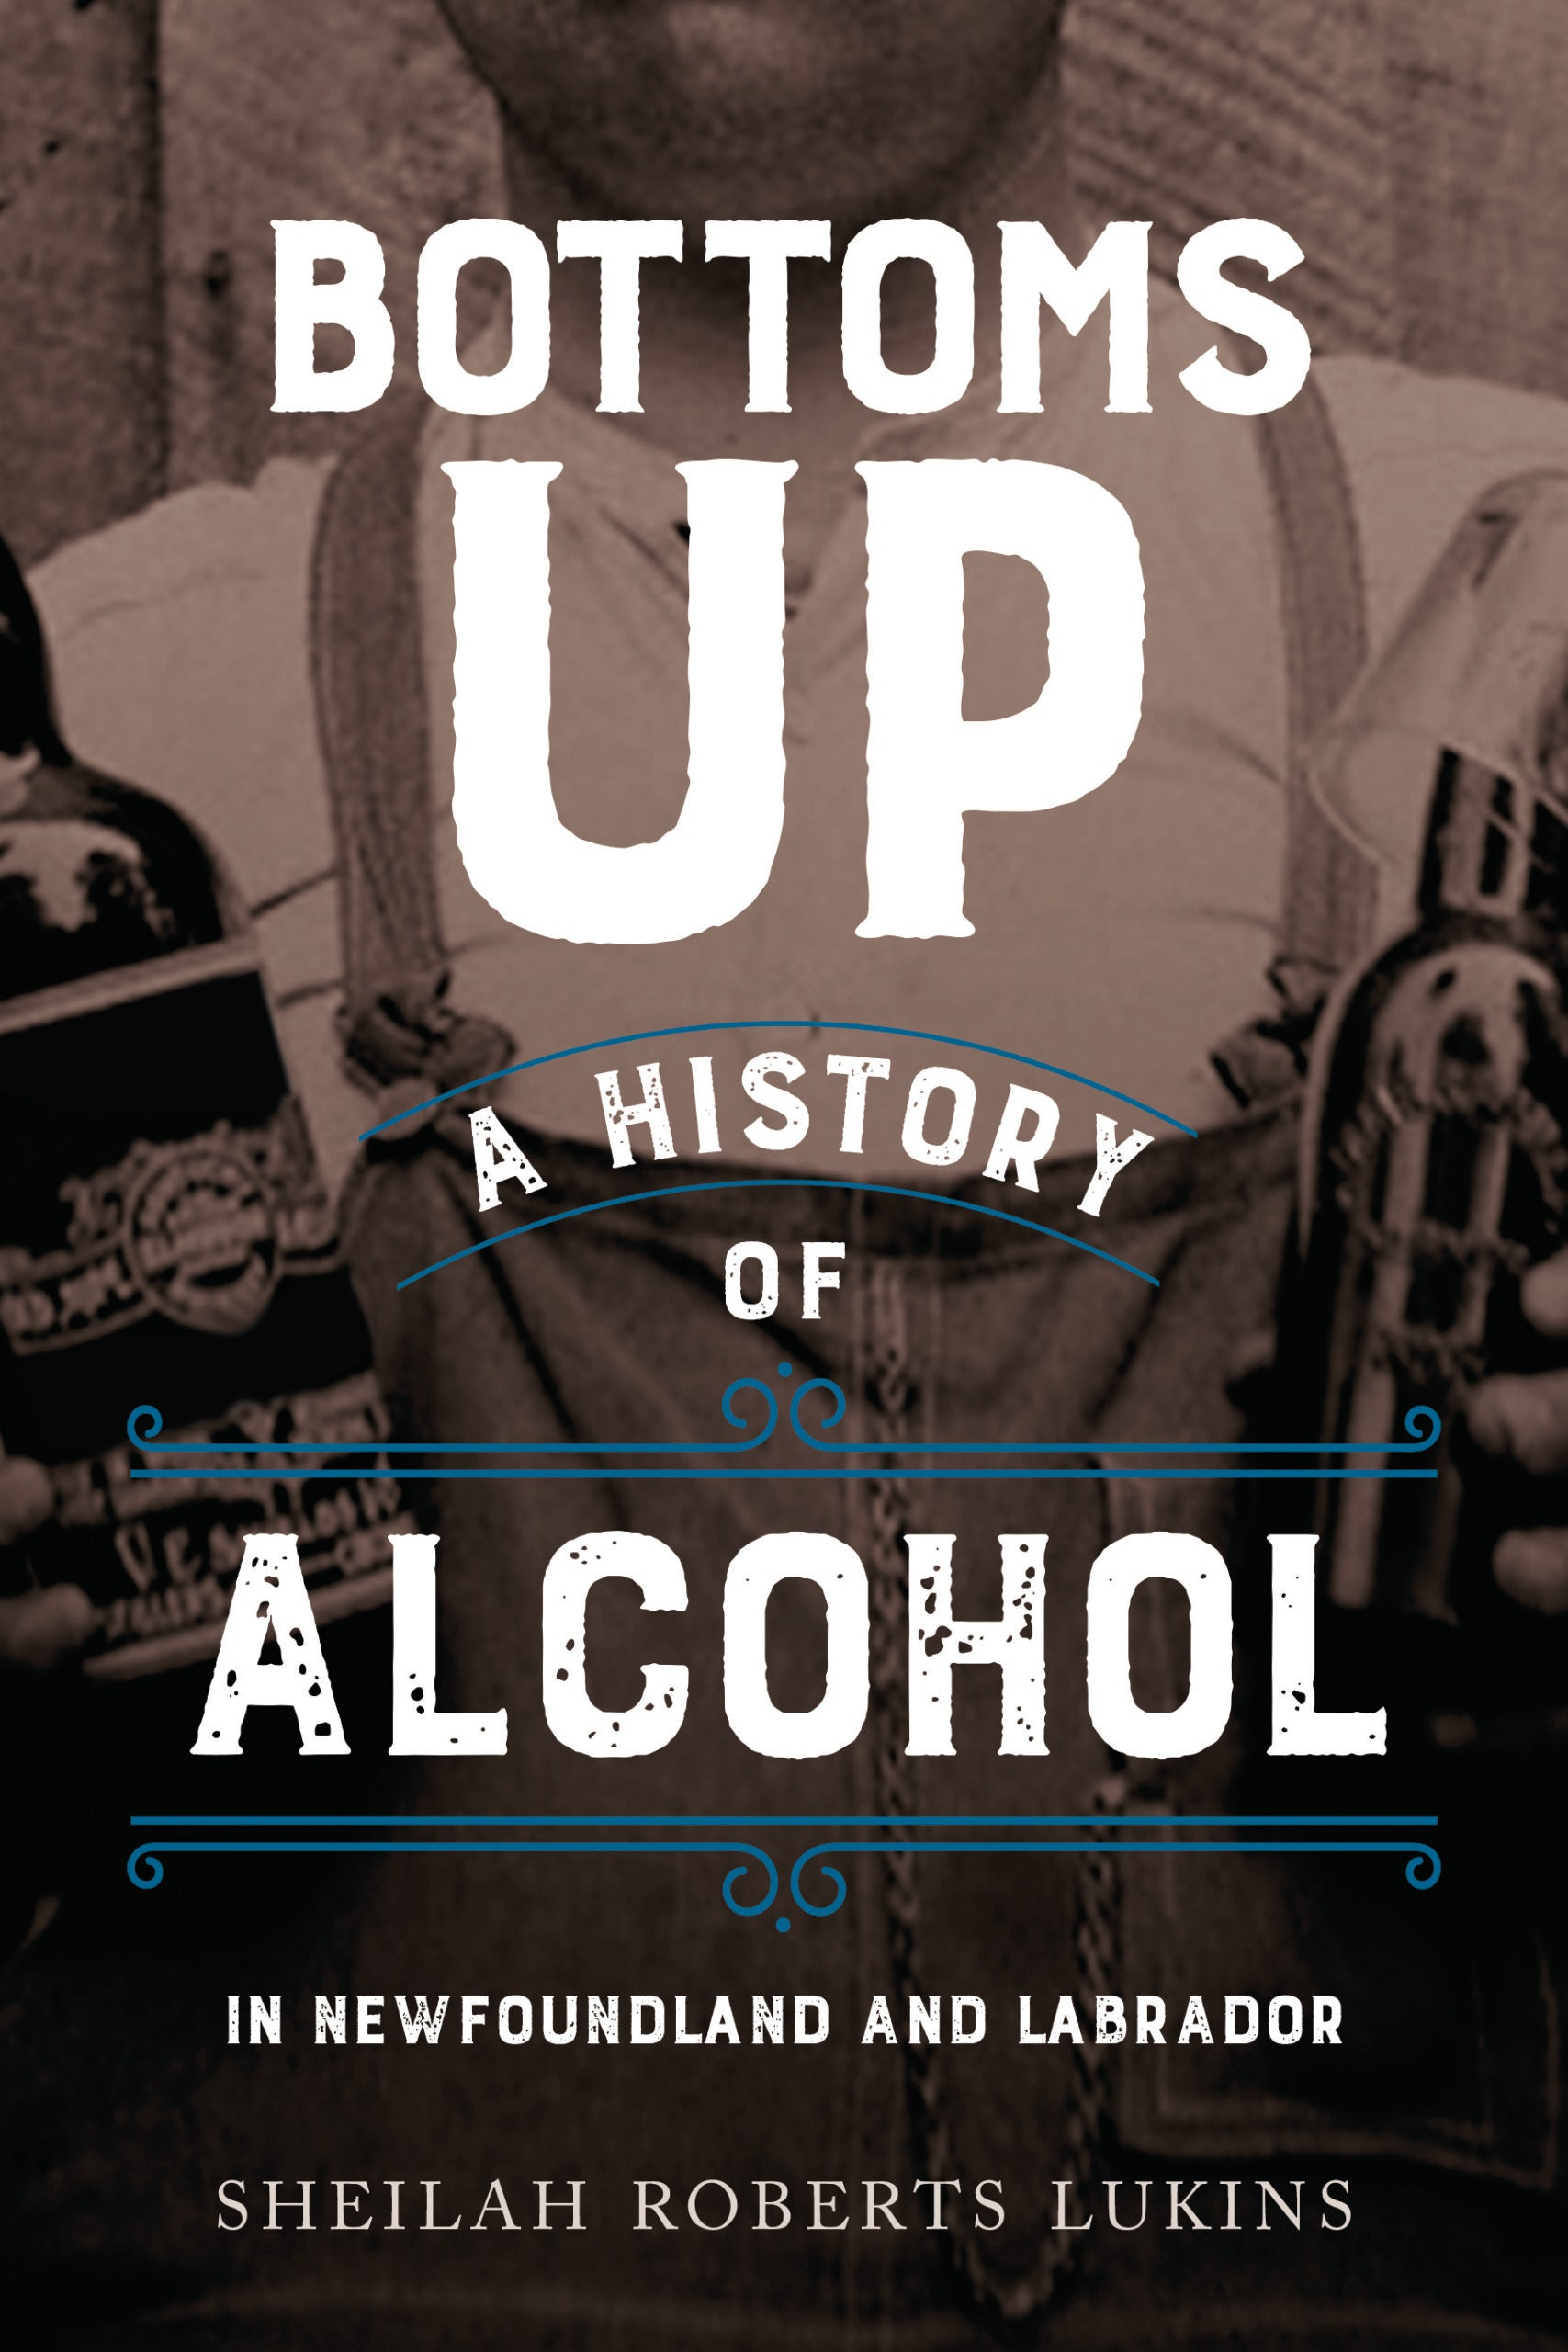 Bottoms Up: A History of Alcohol